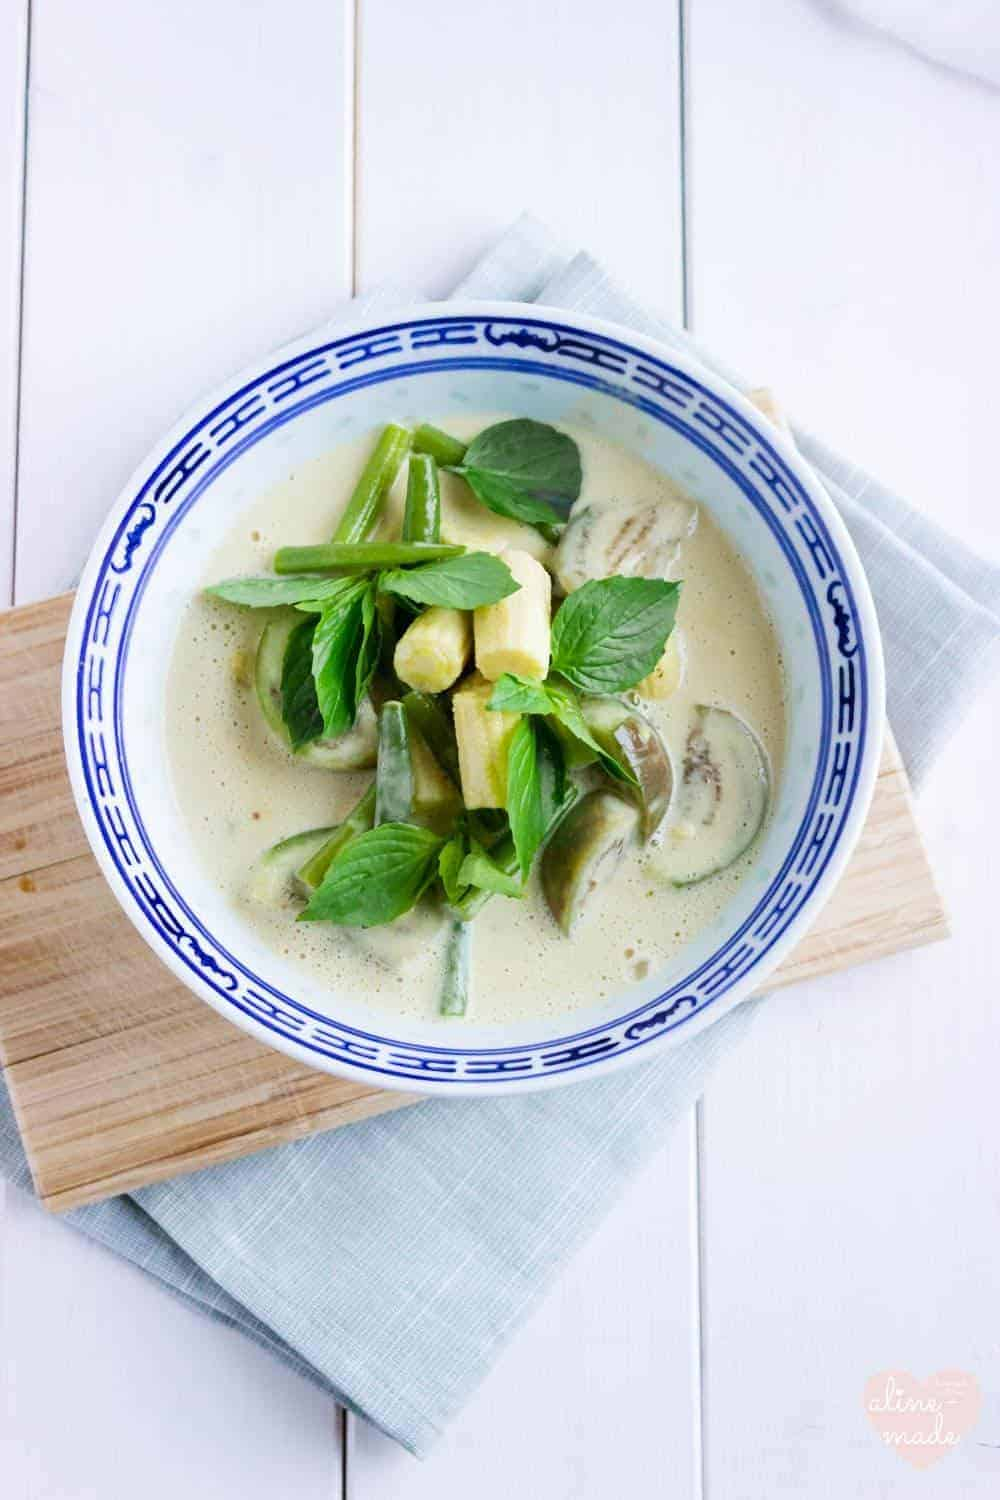 Vegan Thai Green Curry - Served with Thai basil.